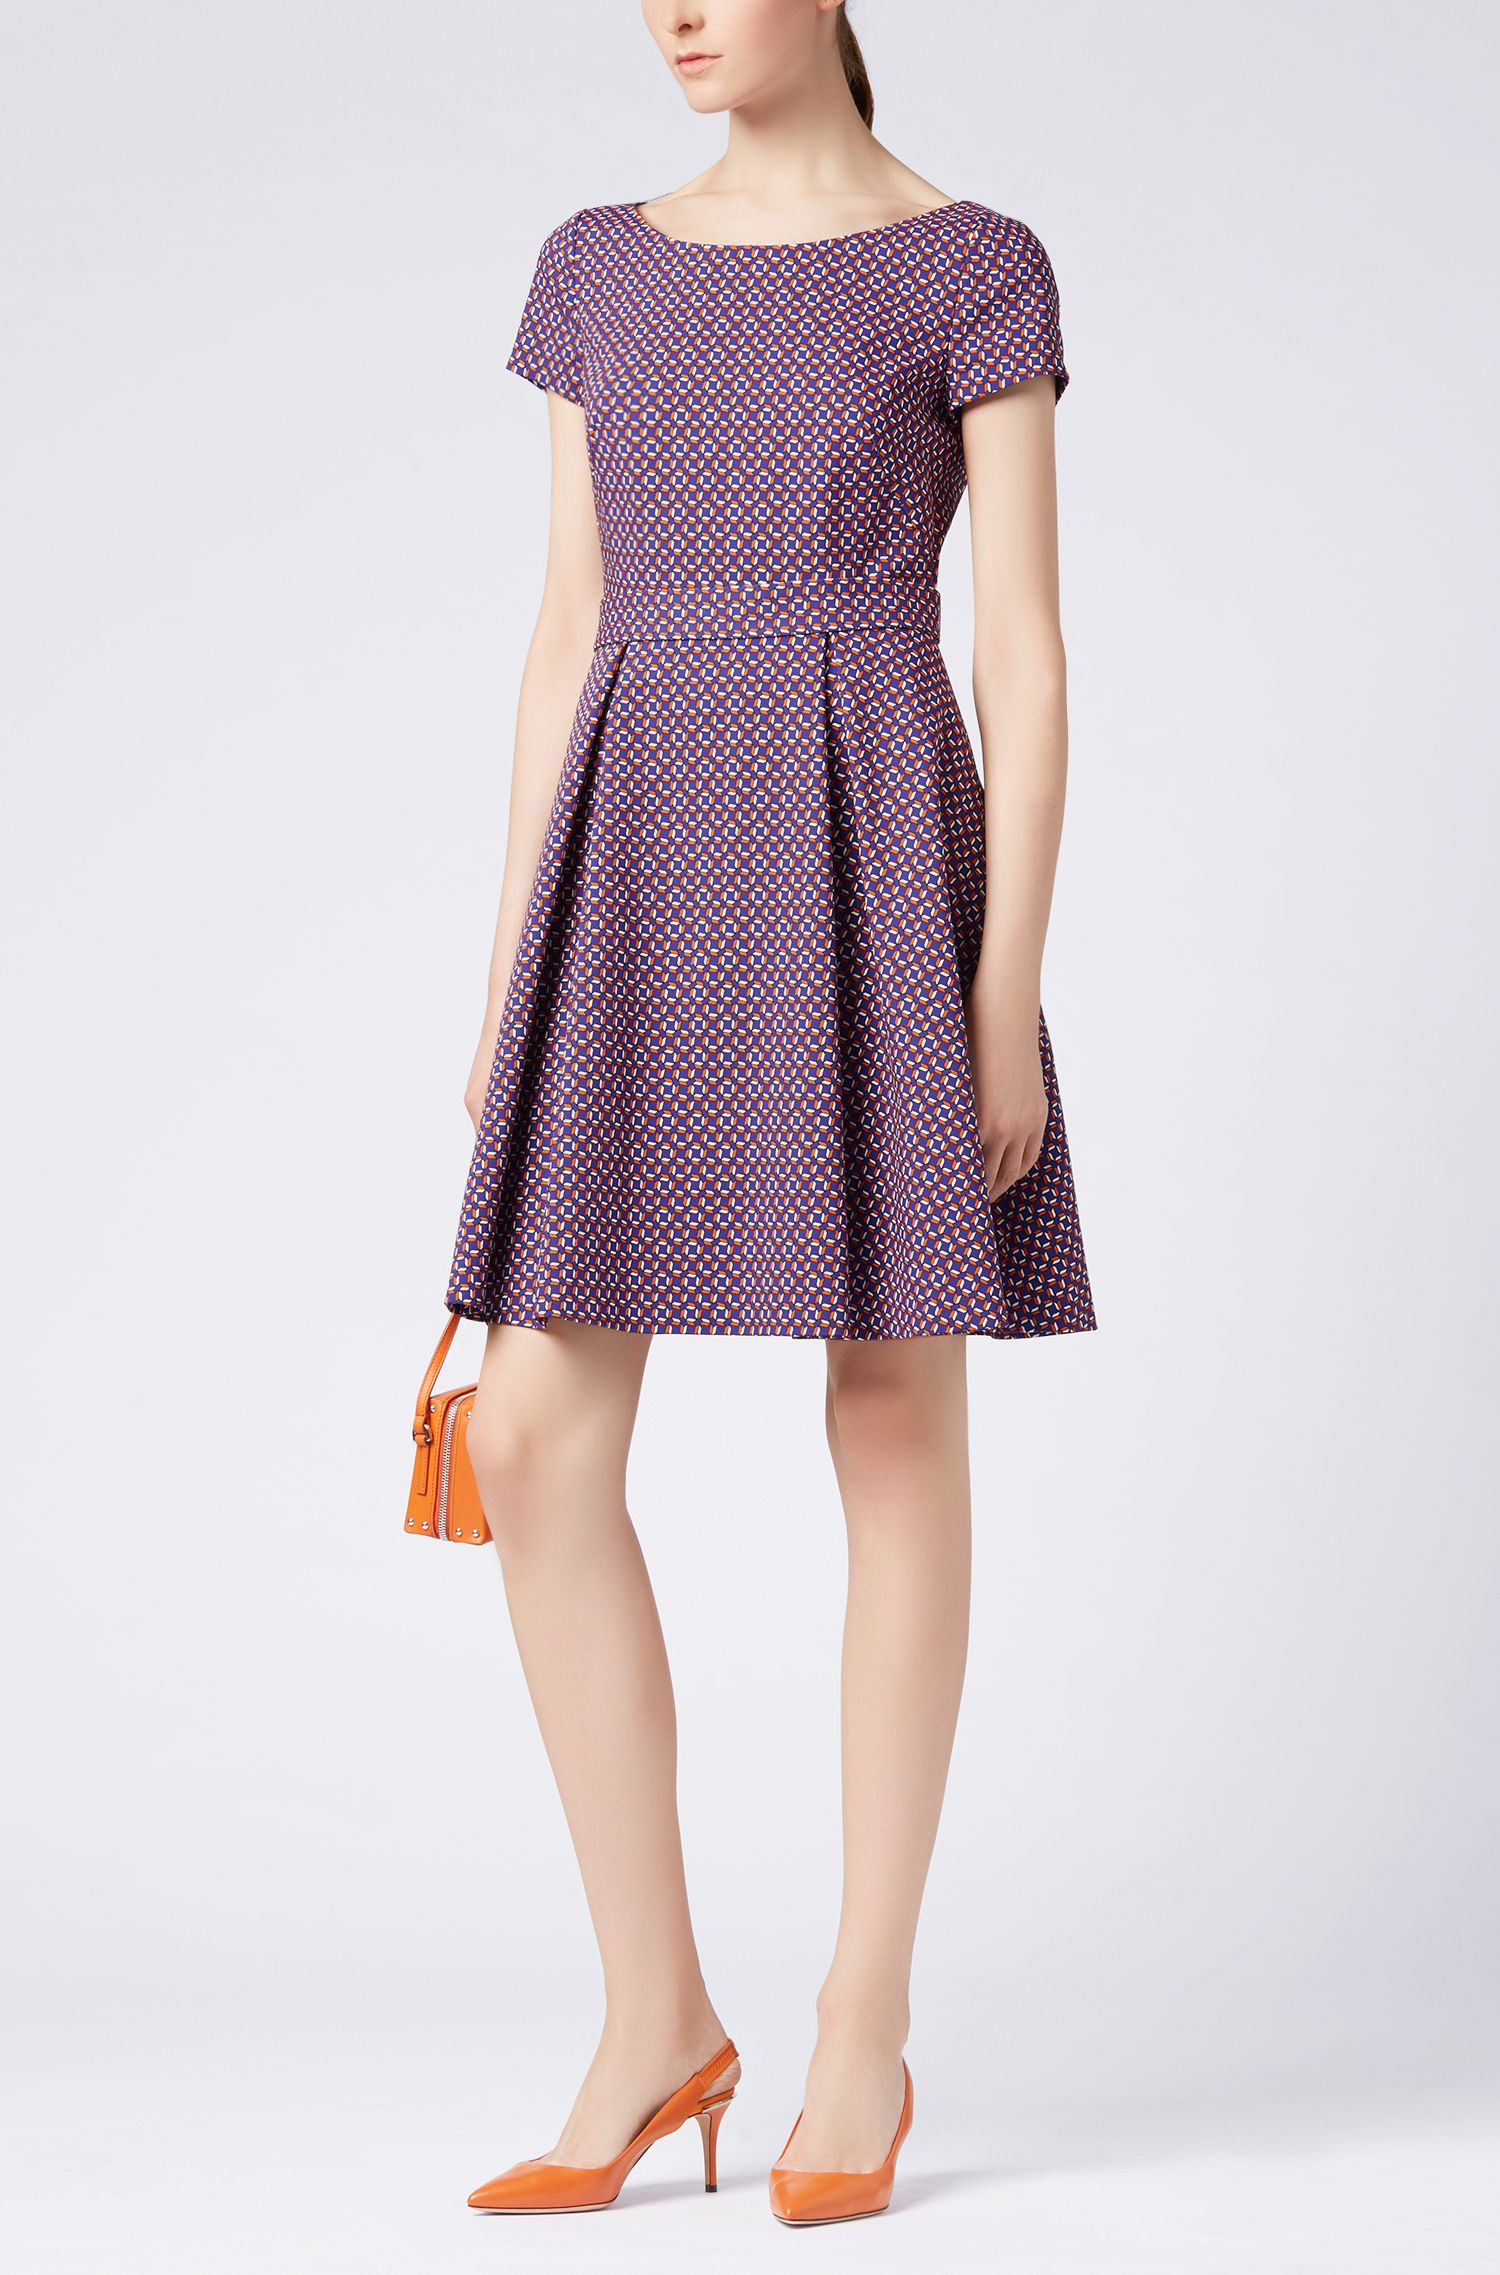 Wide-neck dress in colorful geometric pattern, Patterned